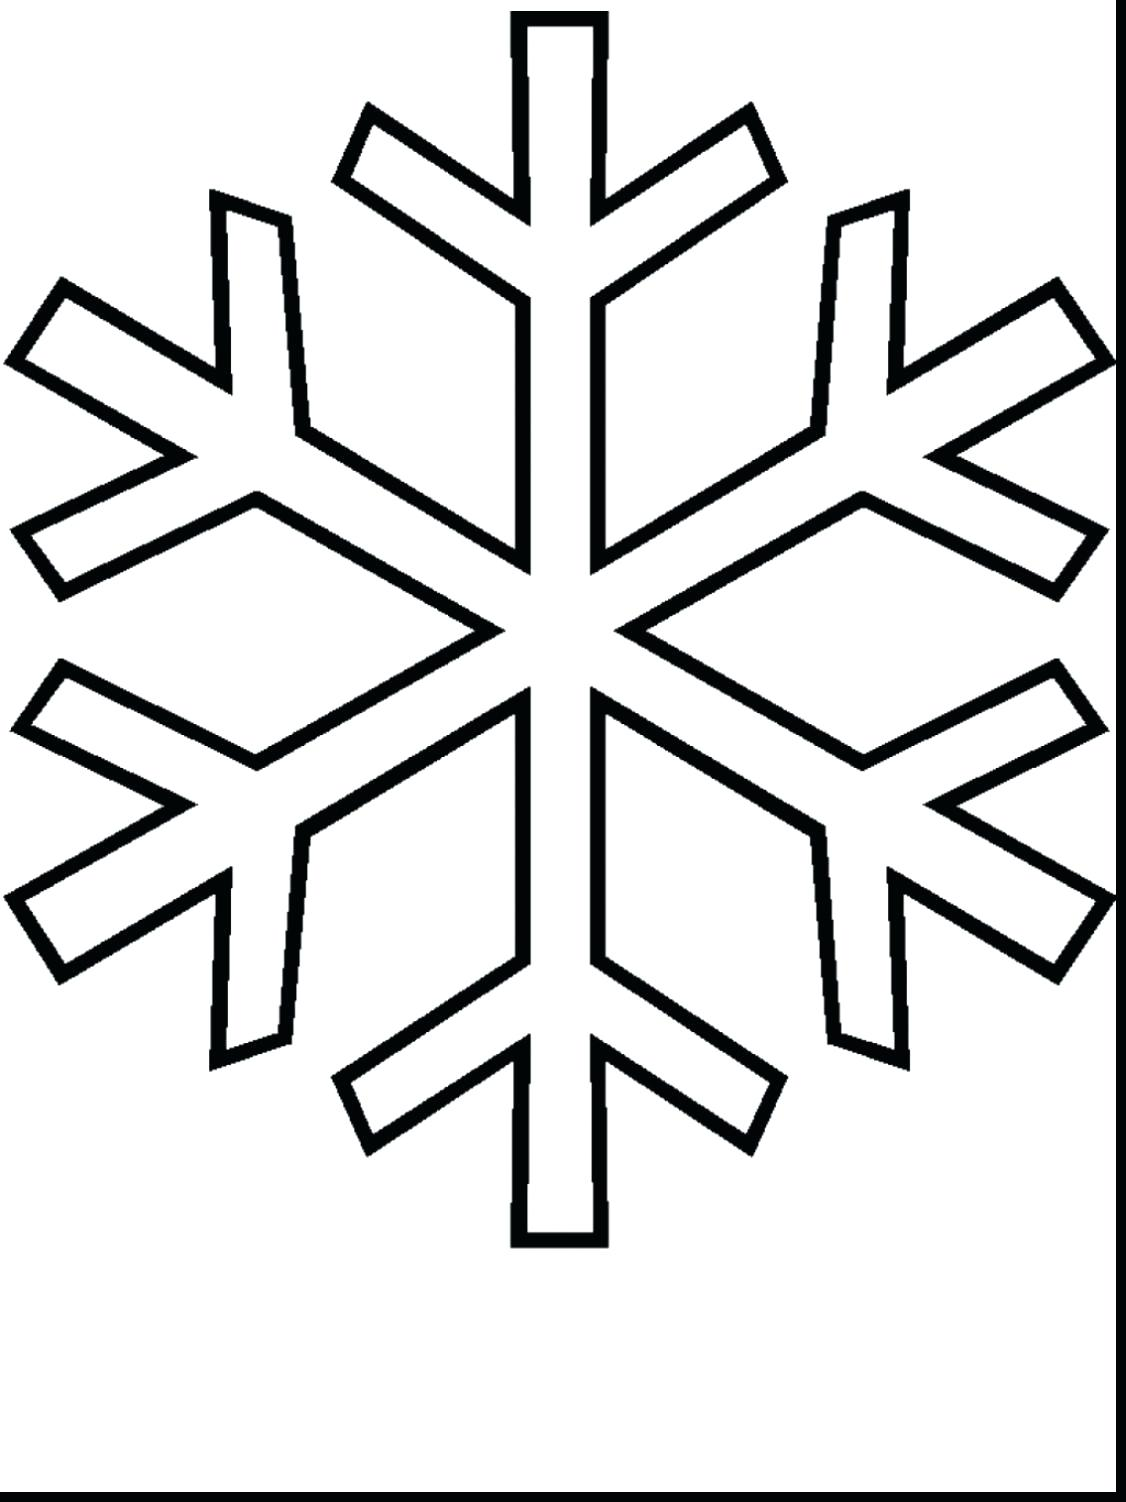 1126x1502 Coloring Snowflakes Coloring Pages Printable For Making Star Wars